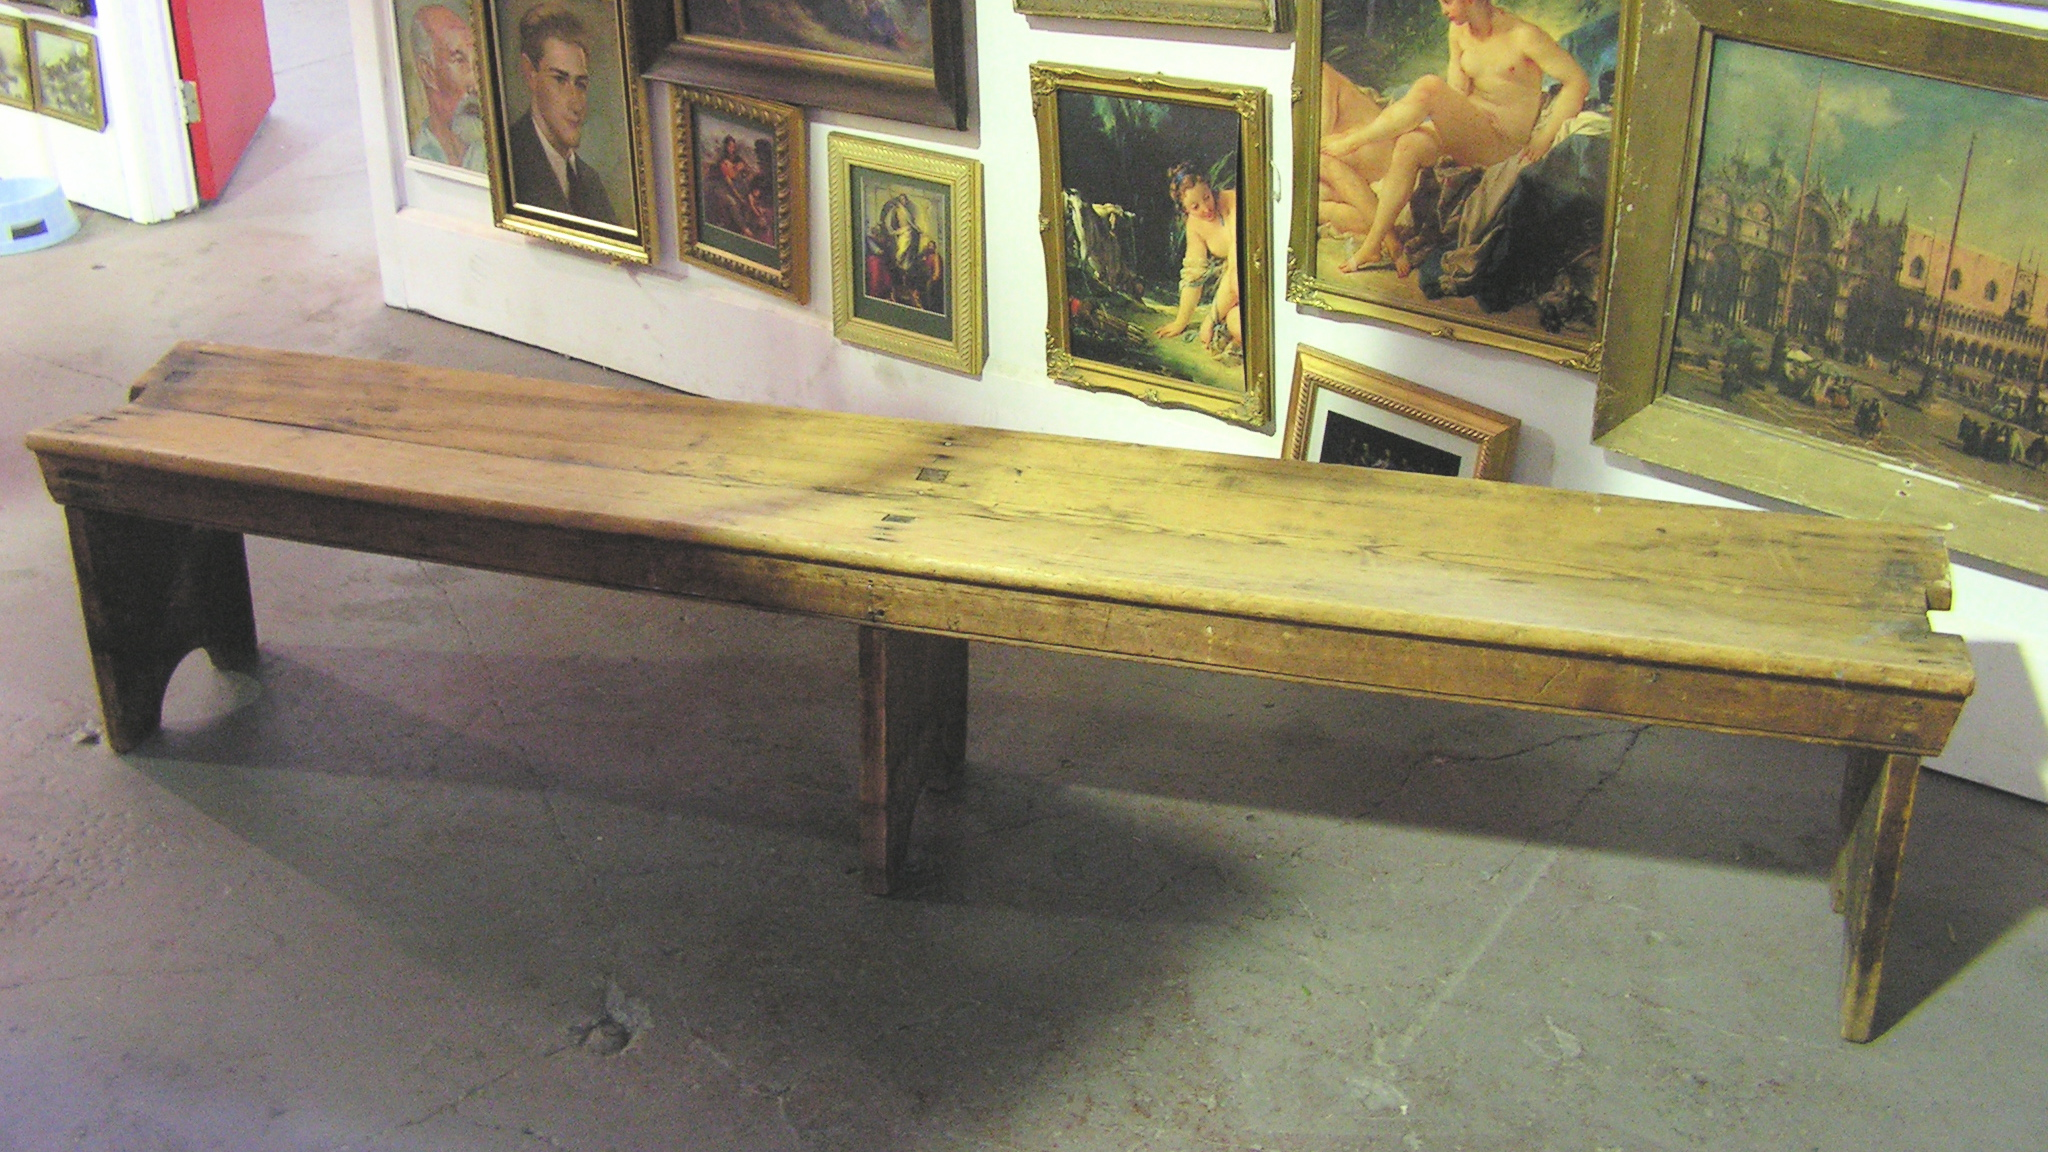 BEN0103 BENCH, Timber - Rustic 2m Long Backless $50